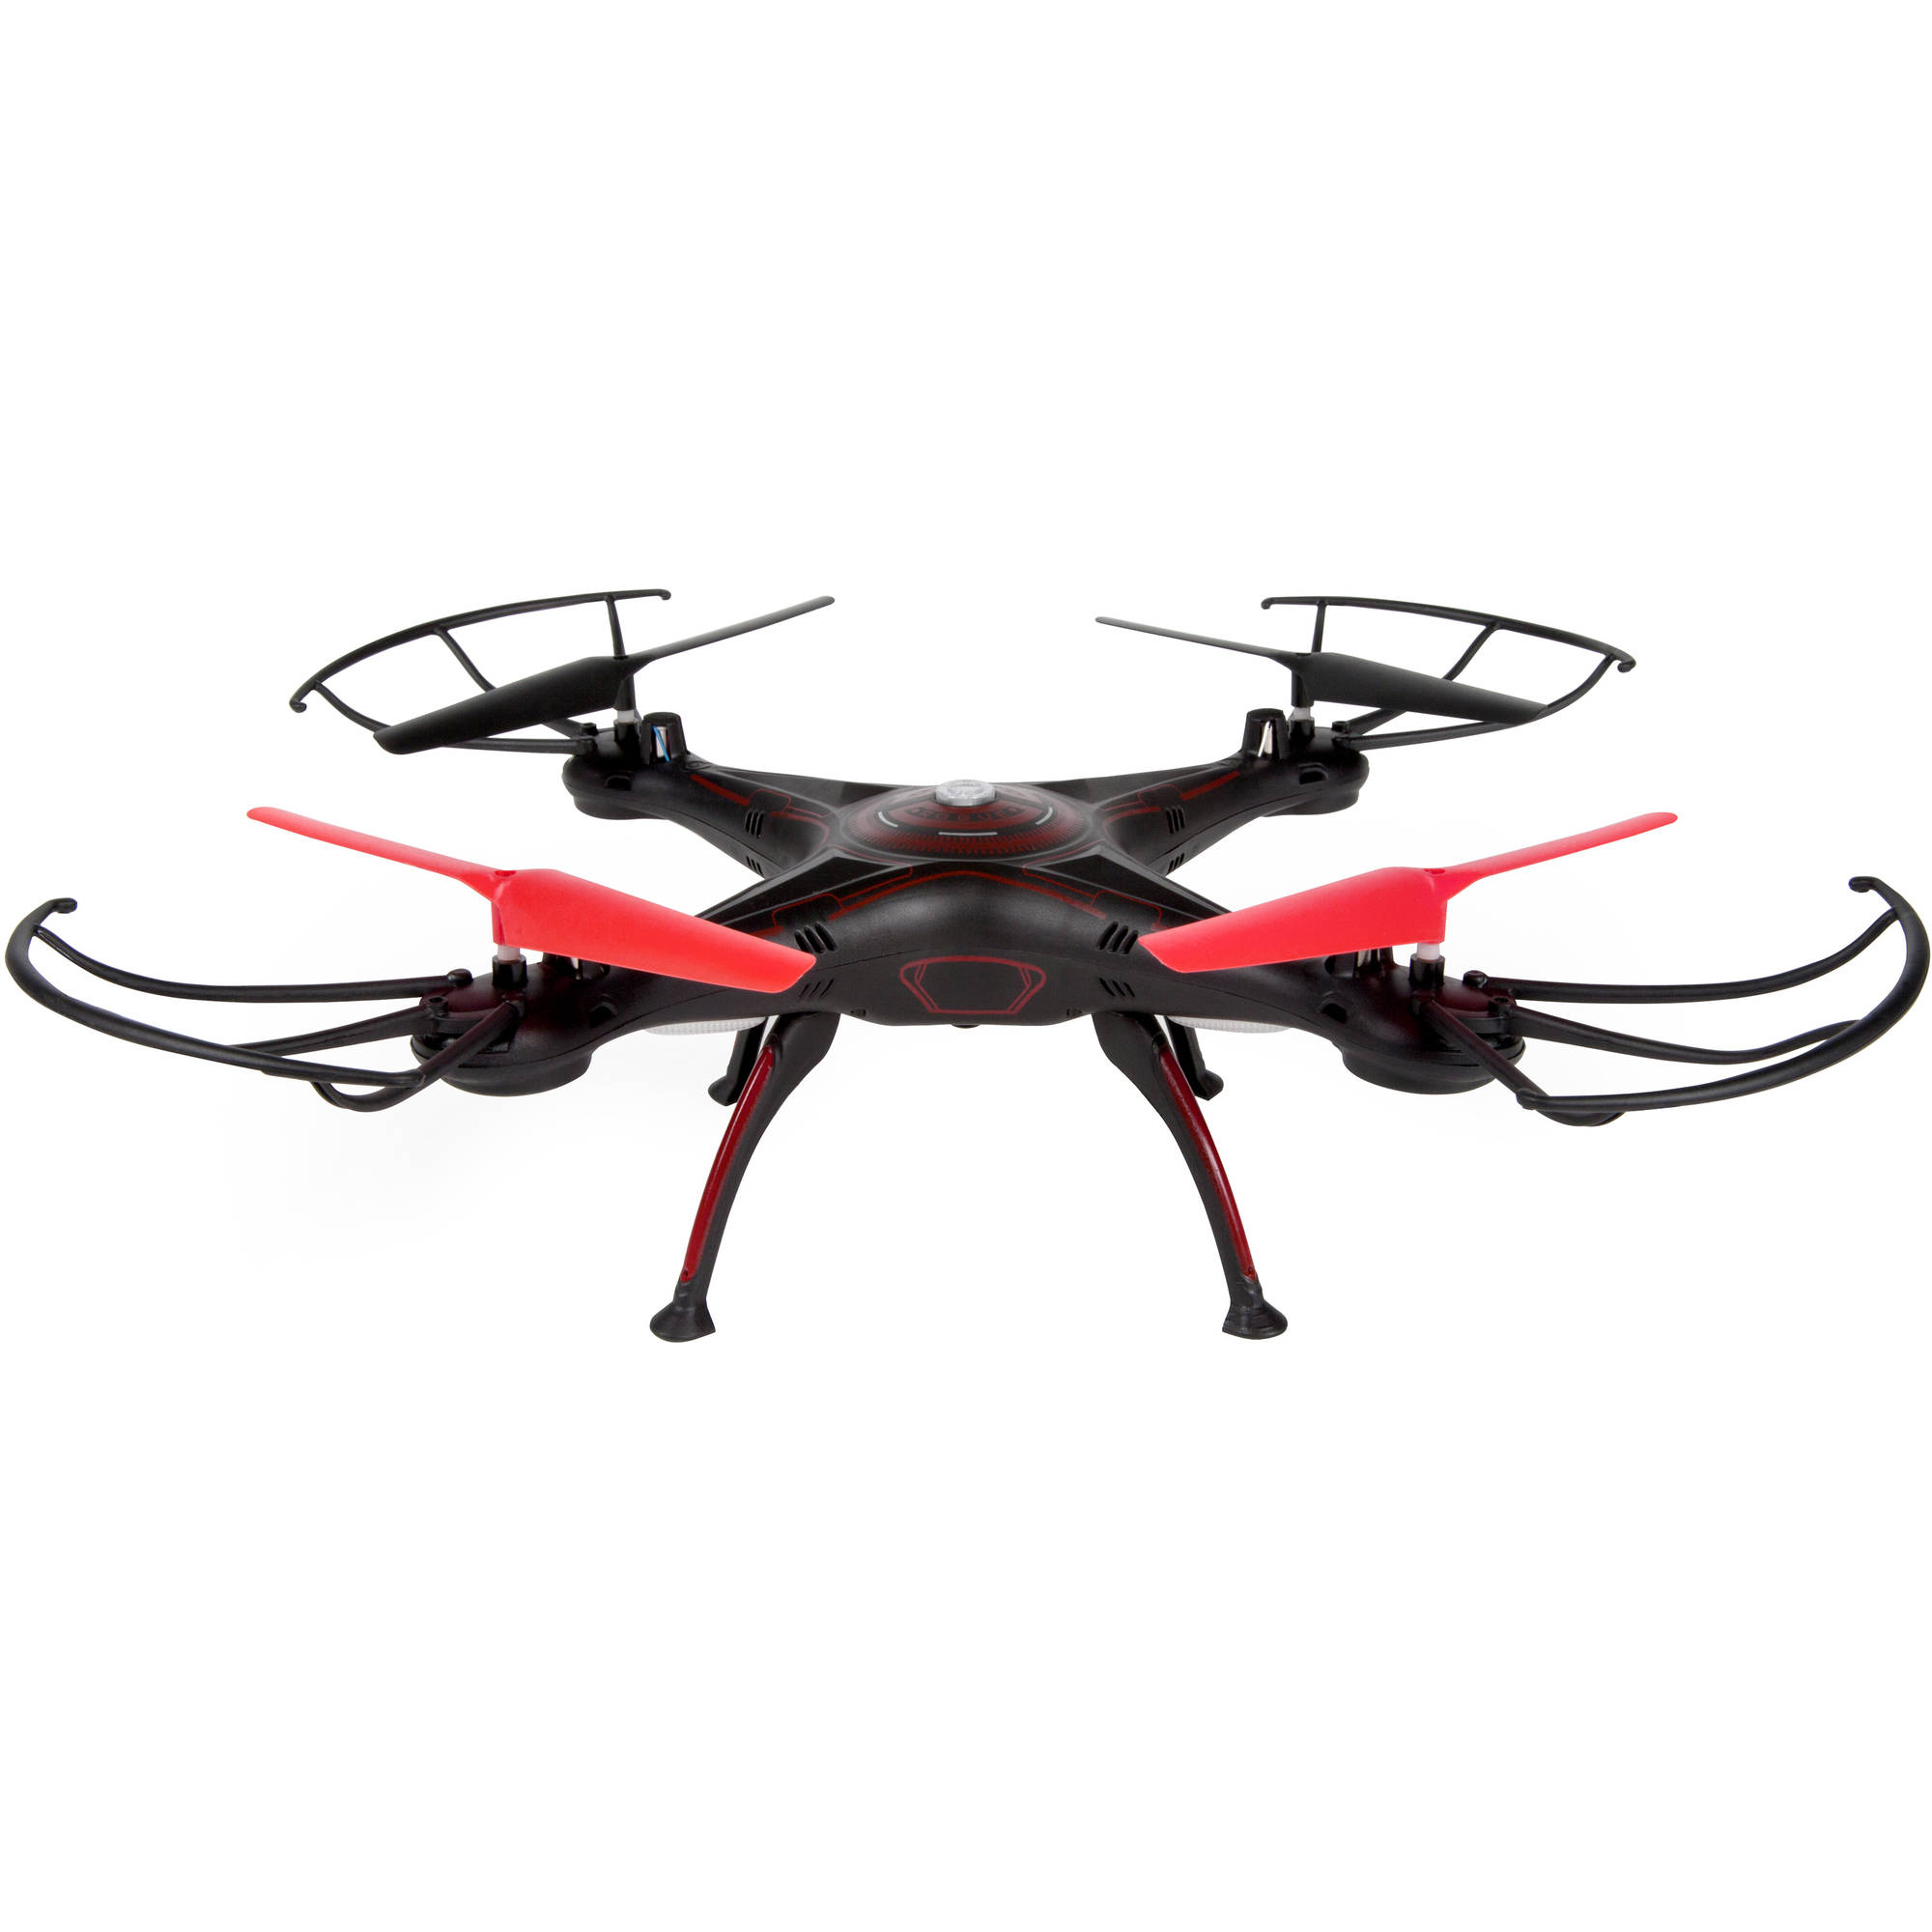 Rouge Drone 2.4GHz 4.5-Channel R C Quadcopter by World Tech Toys